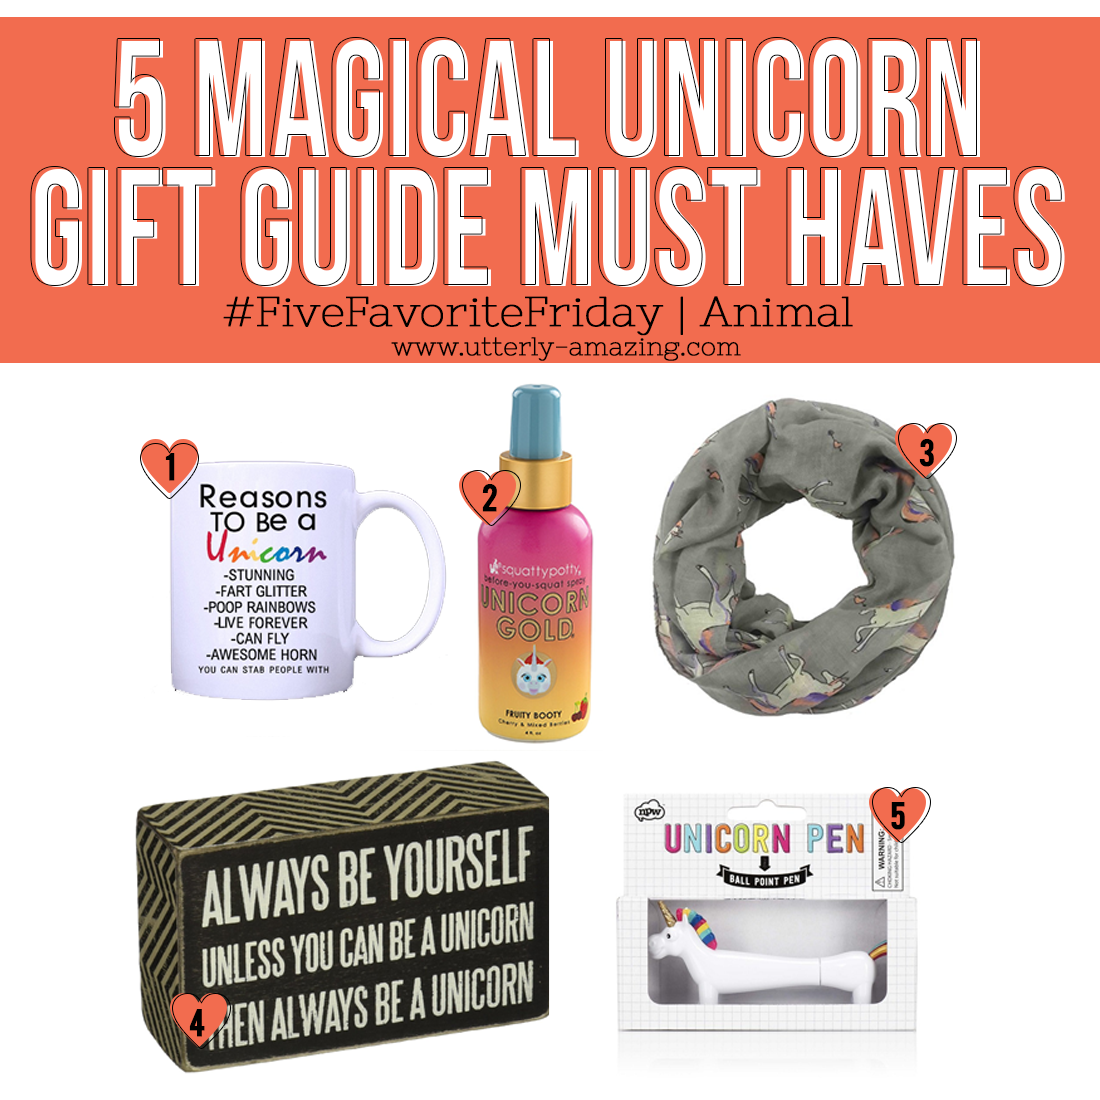 5 Magical Unicorn Gift Guide Must Haves   #FiveFavoriteFriday